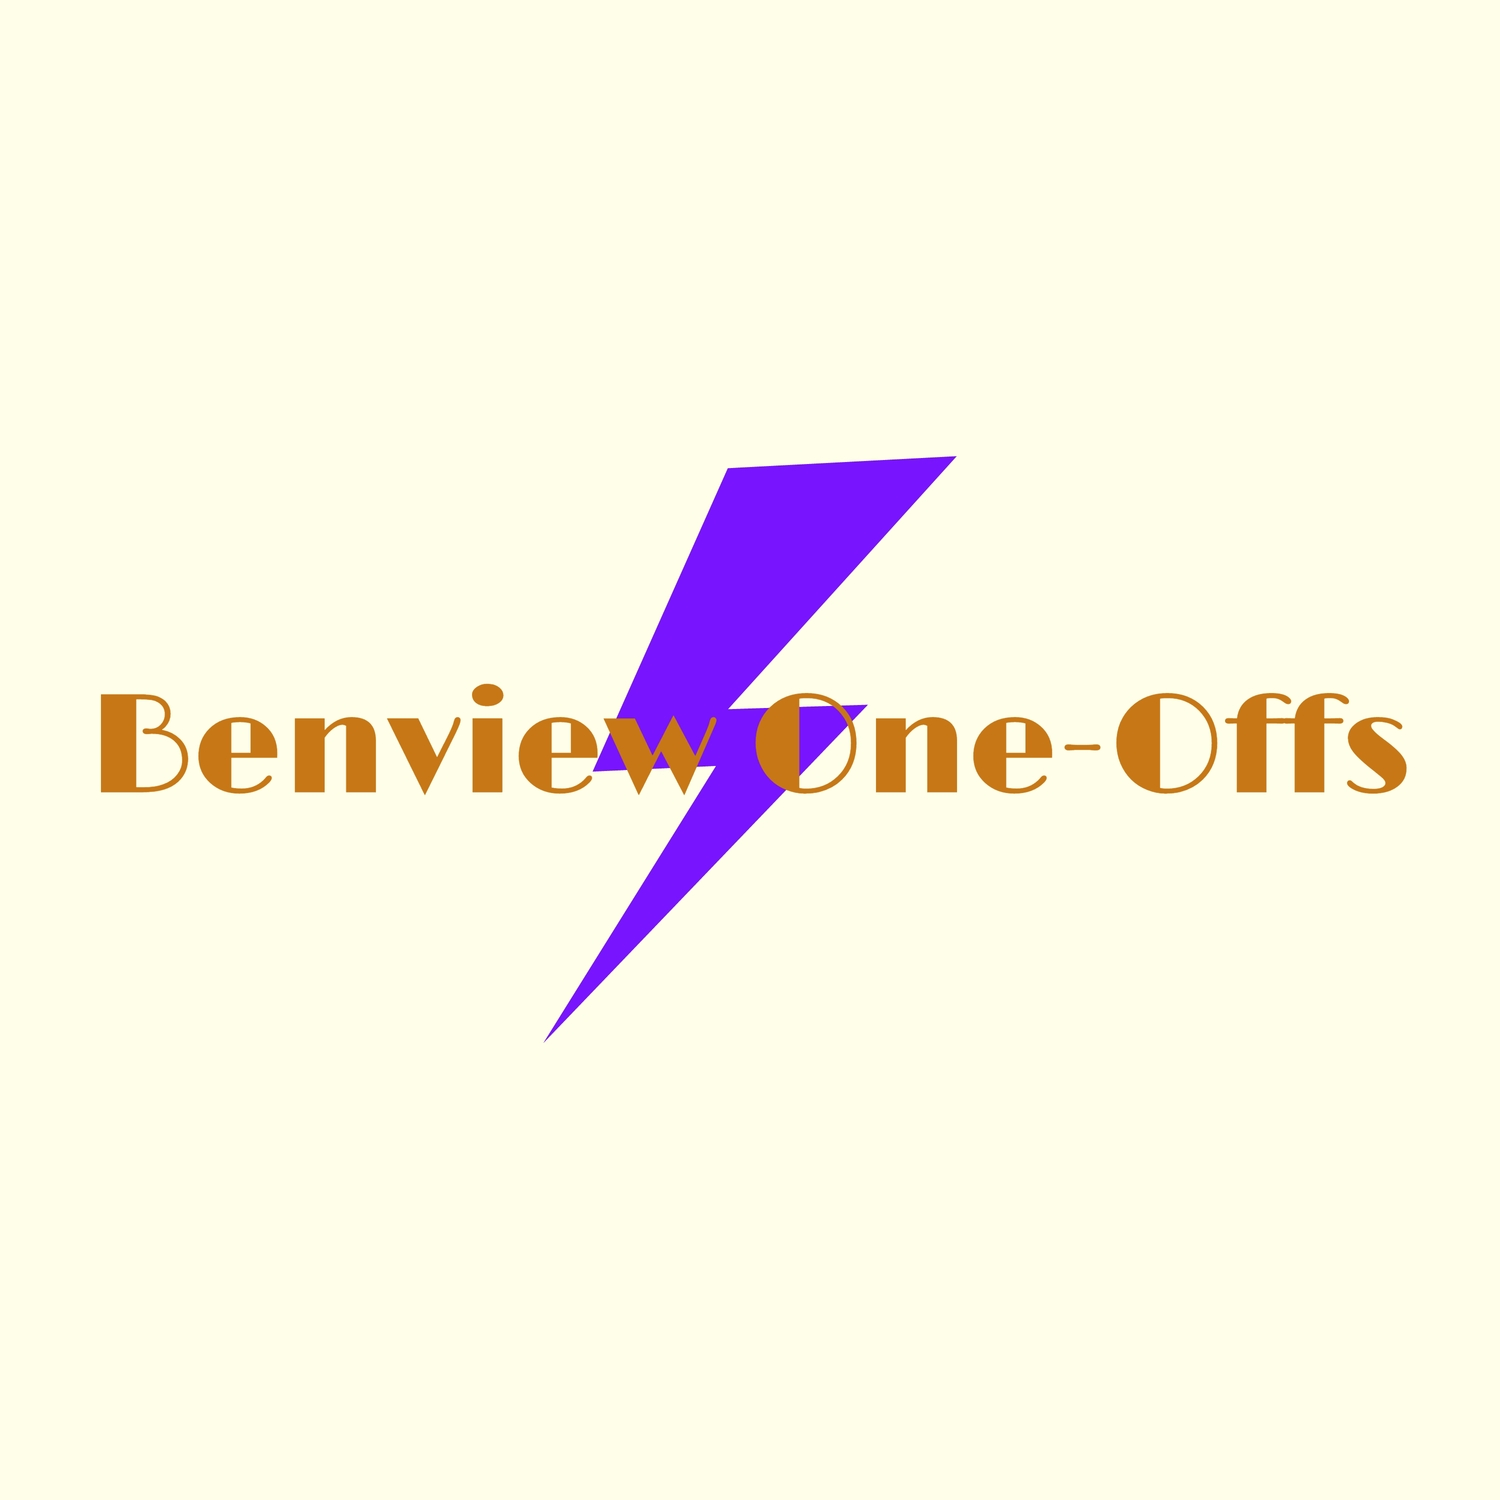 Benview One-Offs